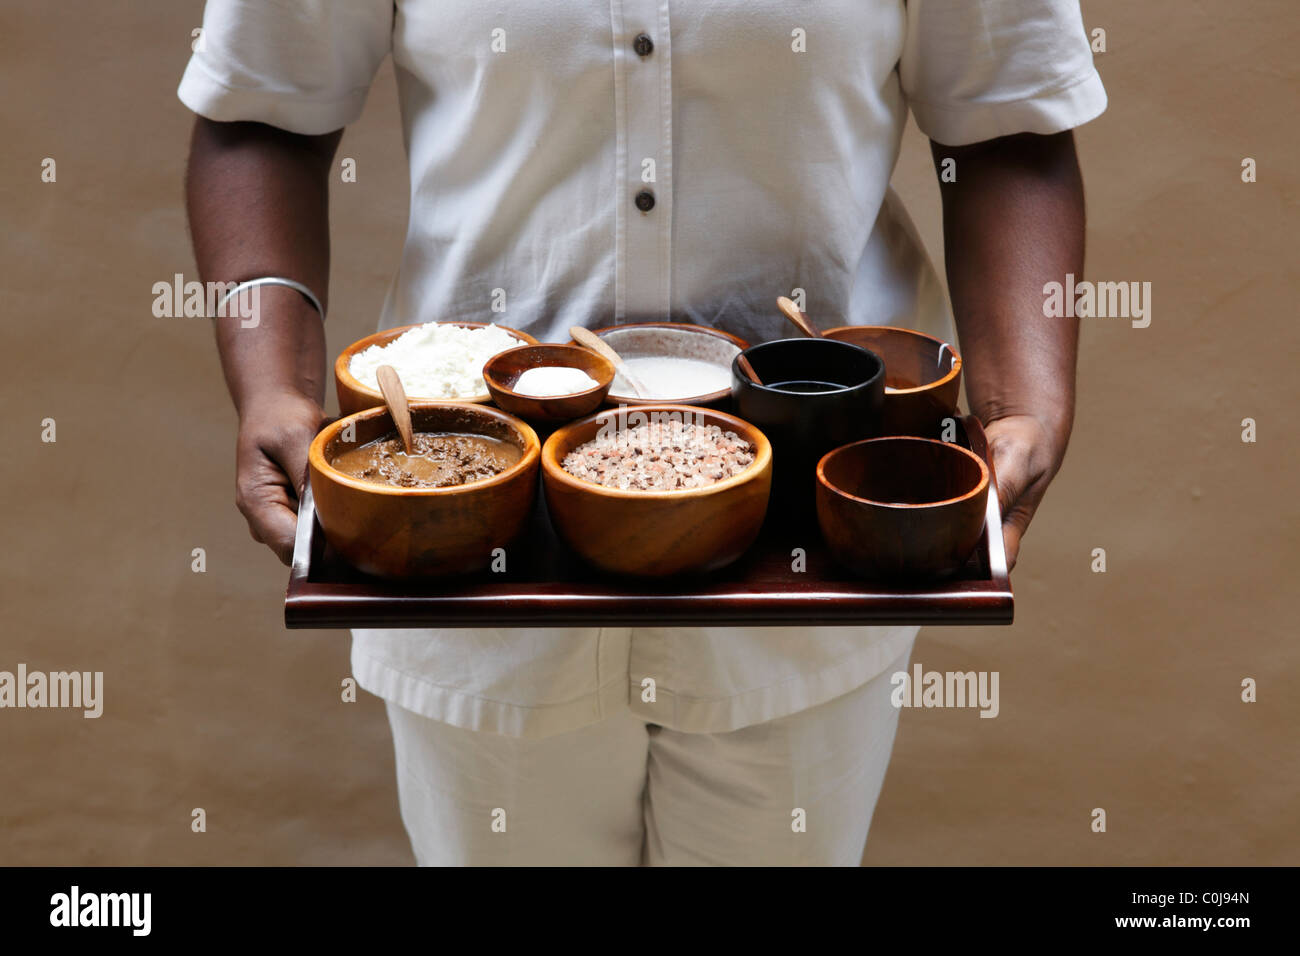 Spa therapist displays ingredients for traditional Malay treatment - Stock Image